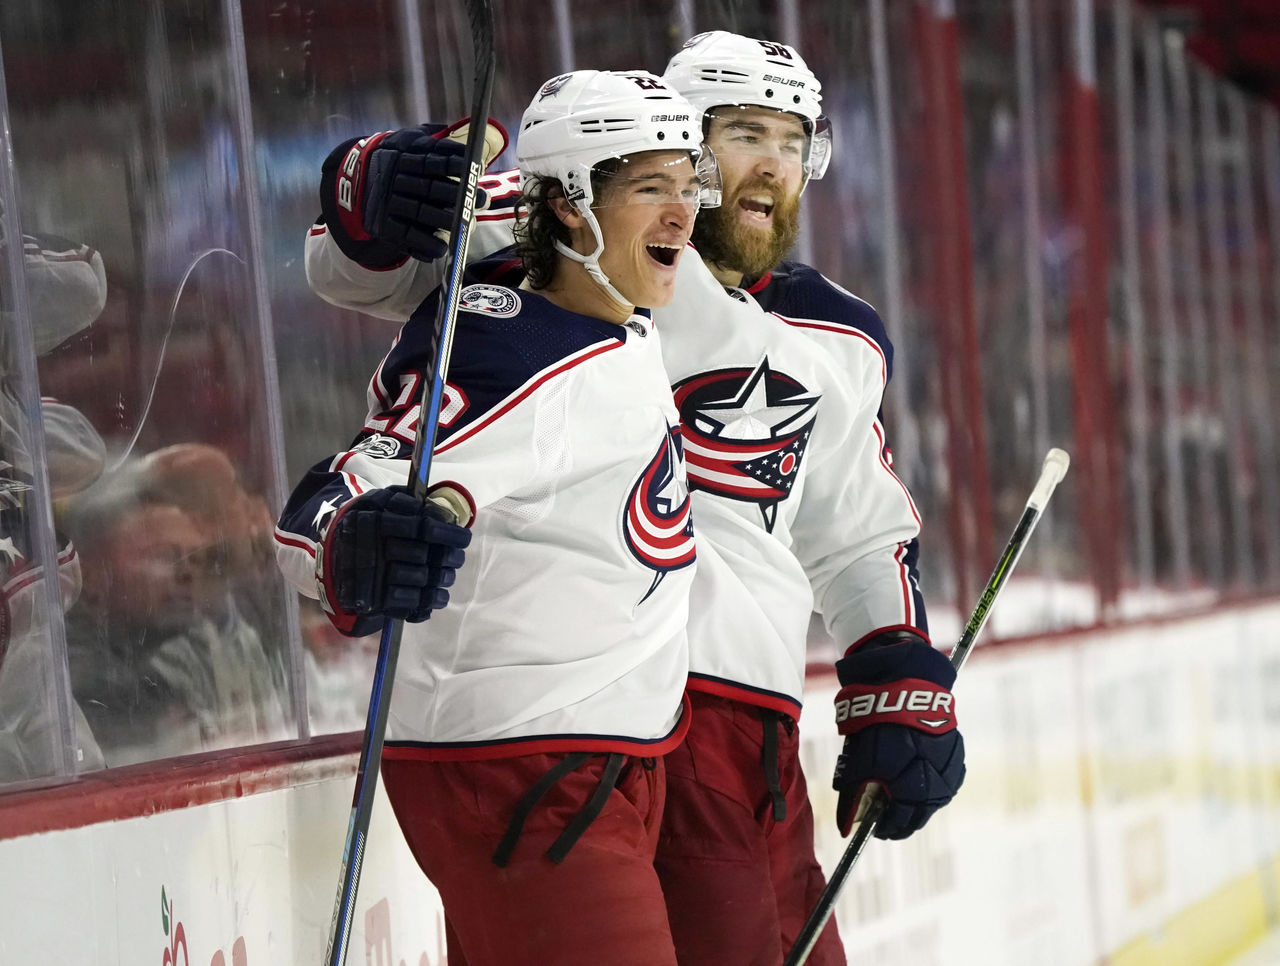 Cropped_2017-10-11t021653z_1369062922_nocid_rtrmadp_3_nhl-columbus-blue-jackets-at-carolina-hurricanes